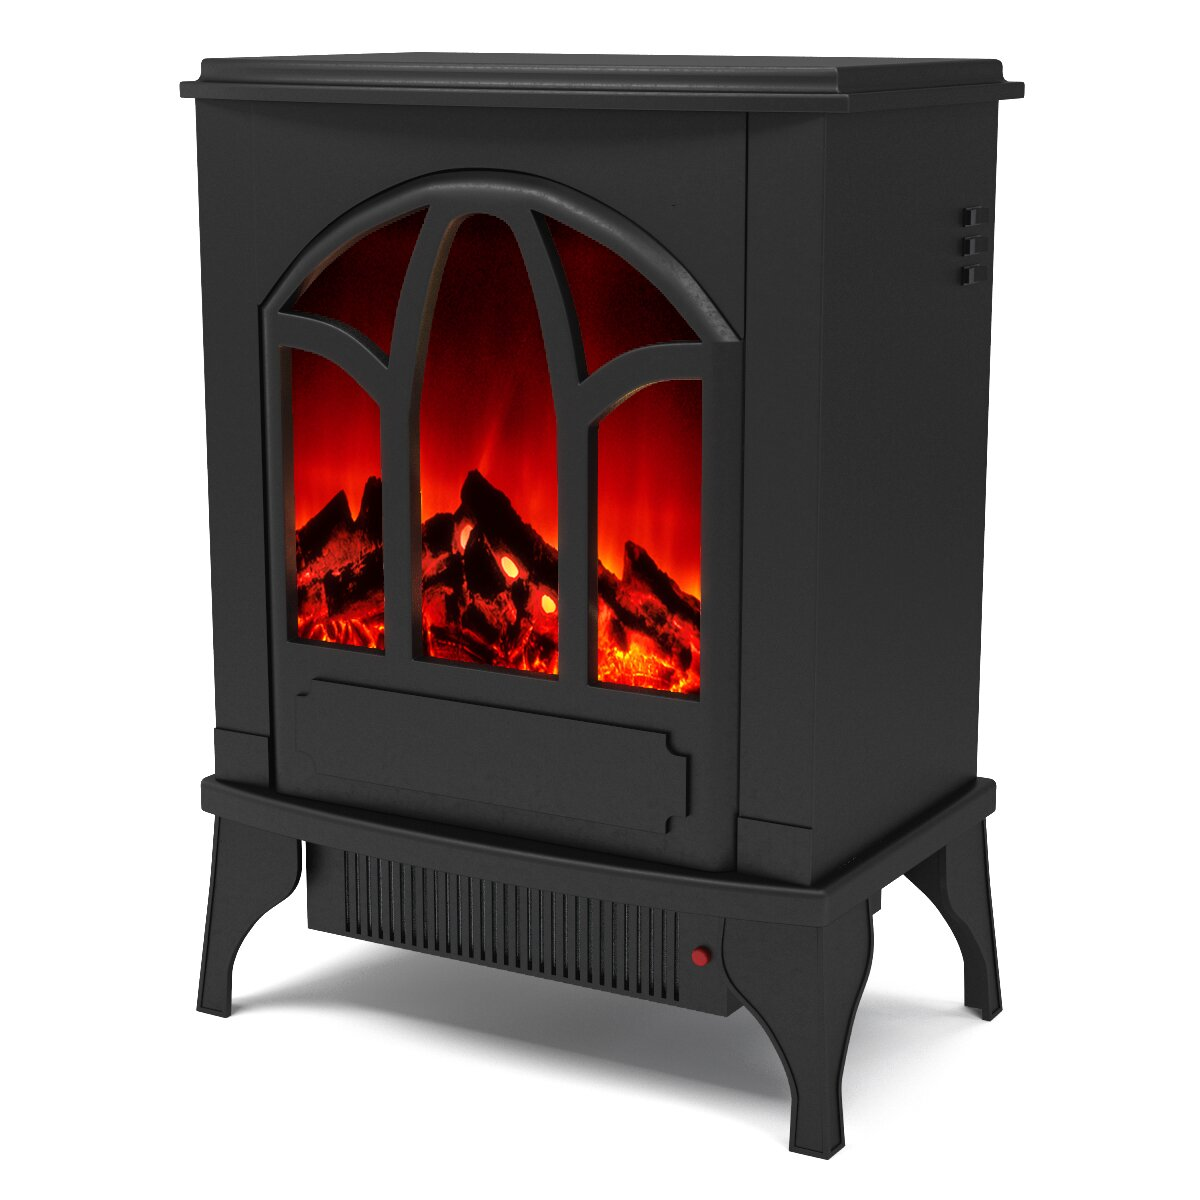 Stove reviews stove reviews electric - Reviews on electric stoves ...